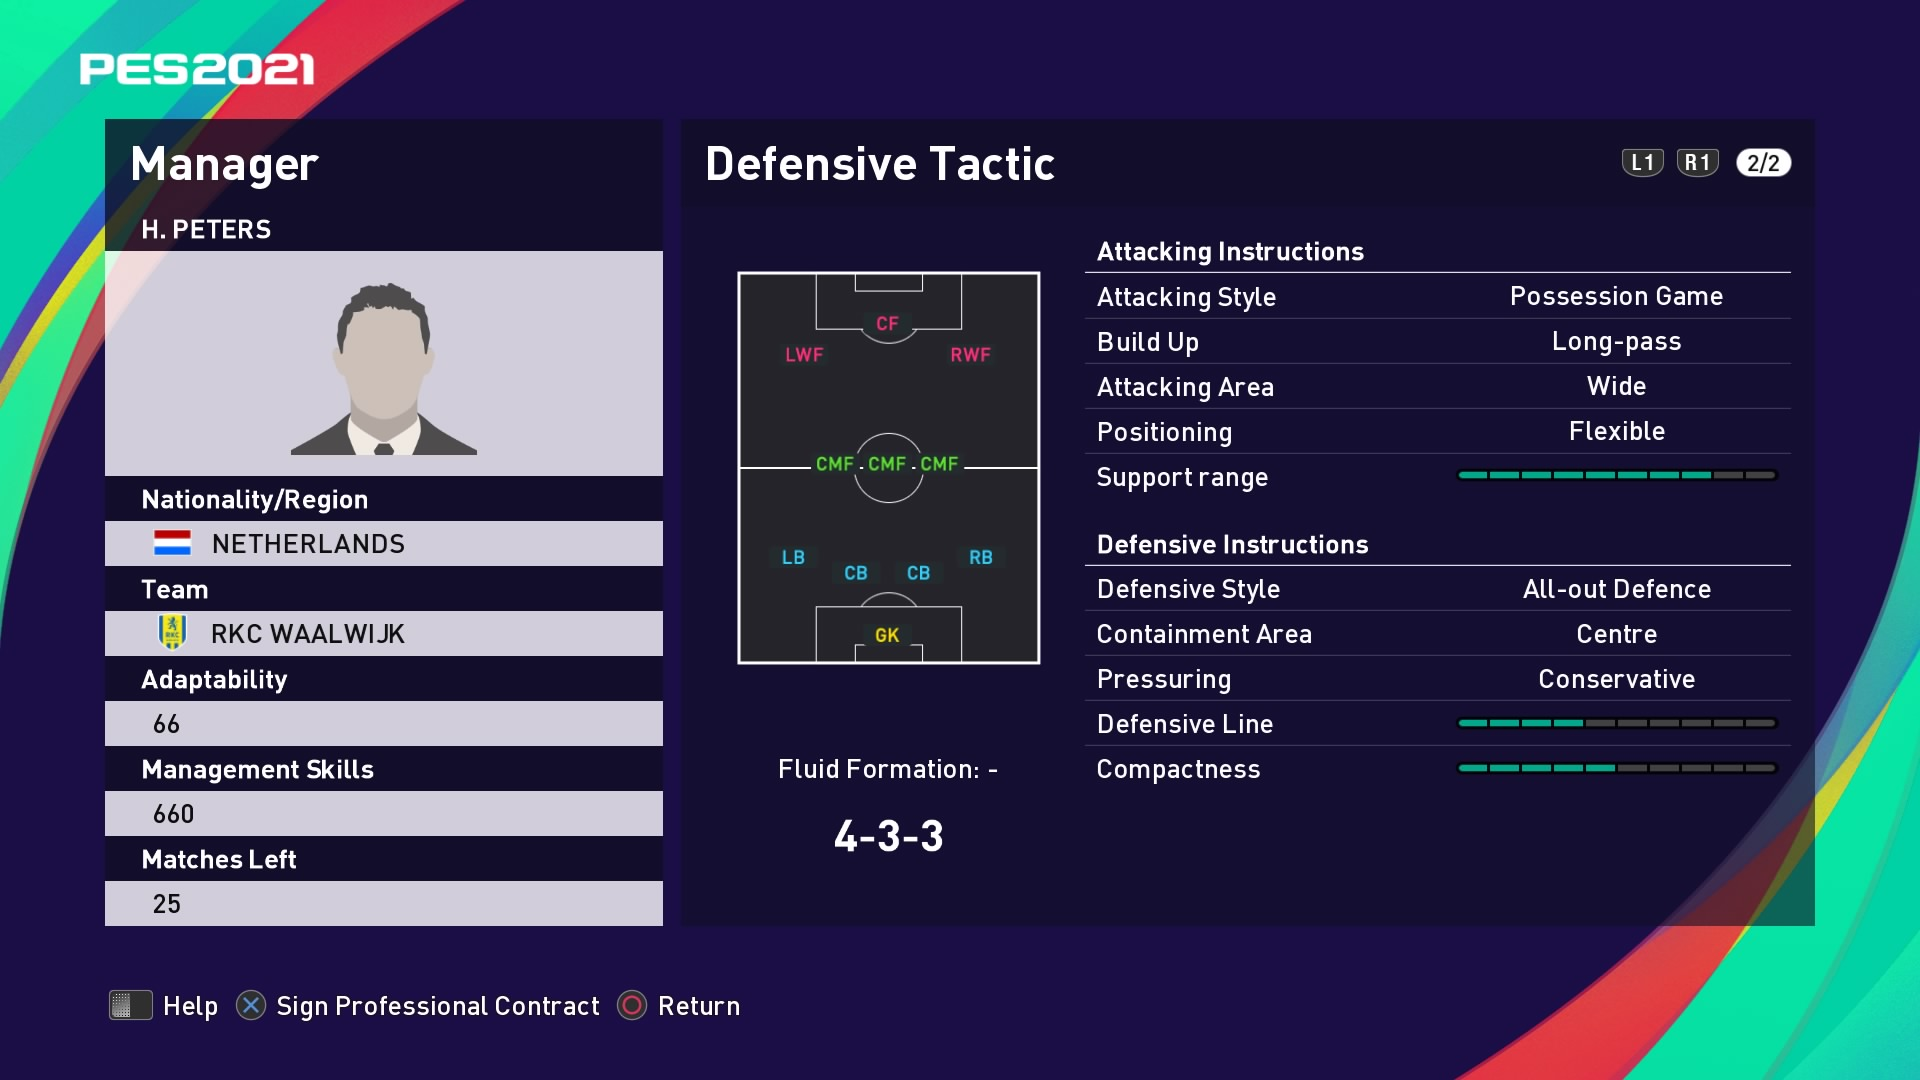 H. Peters (Fred Grim) Defensive Tactic in PES 2021 myClub